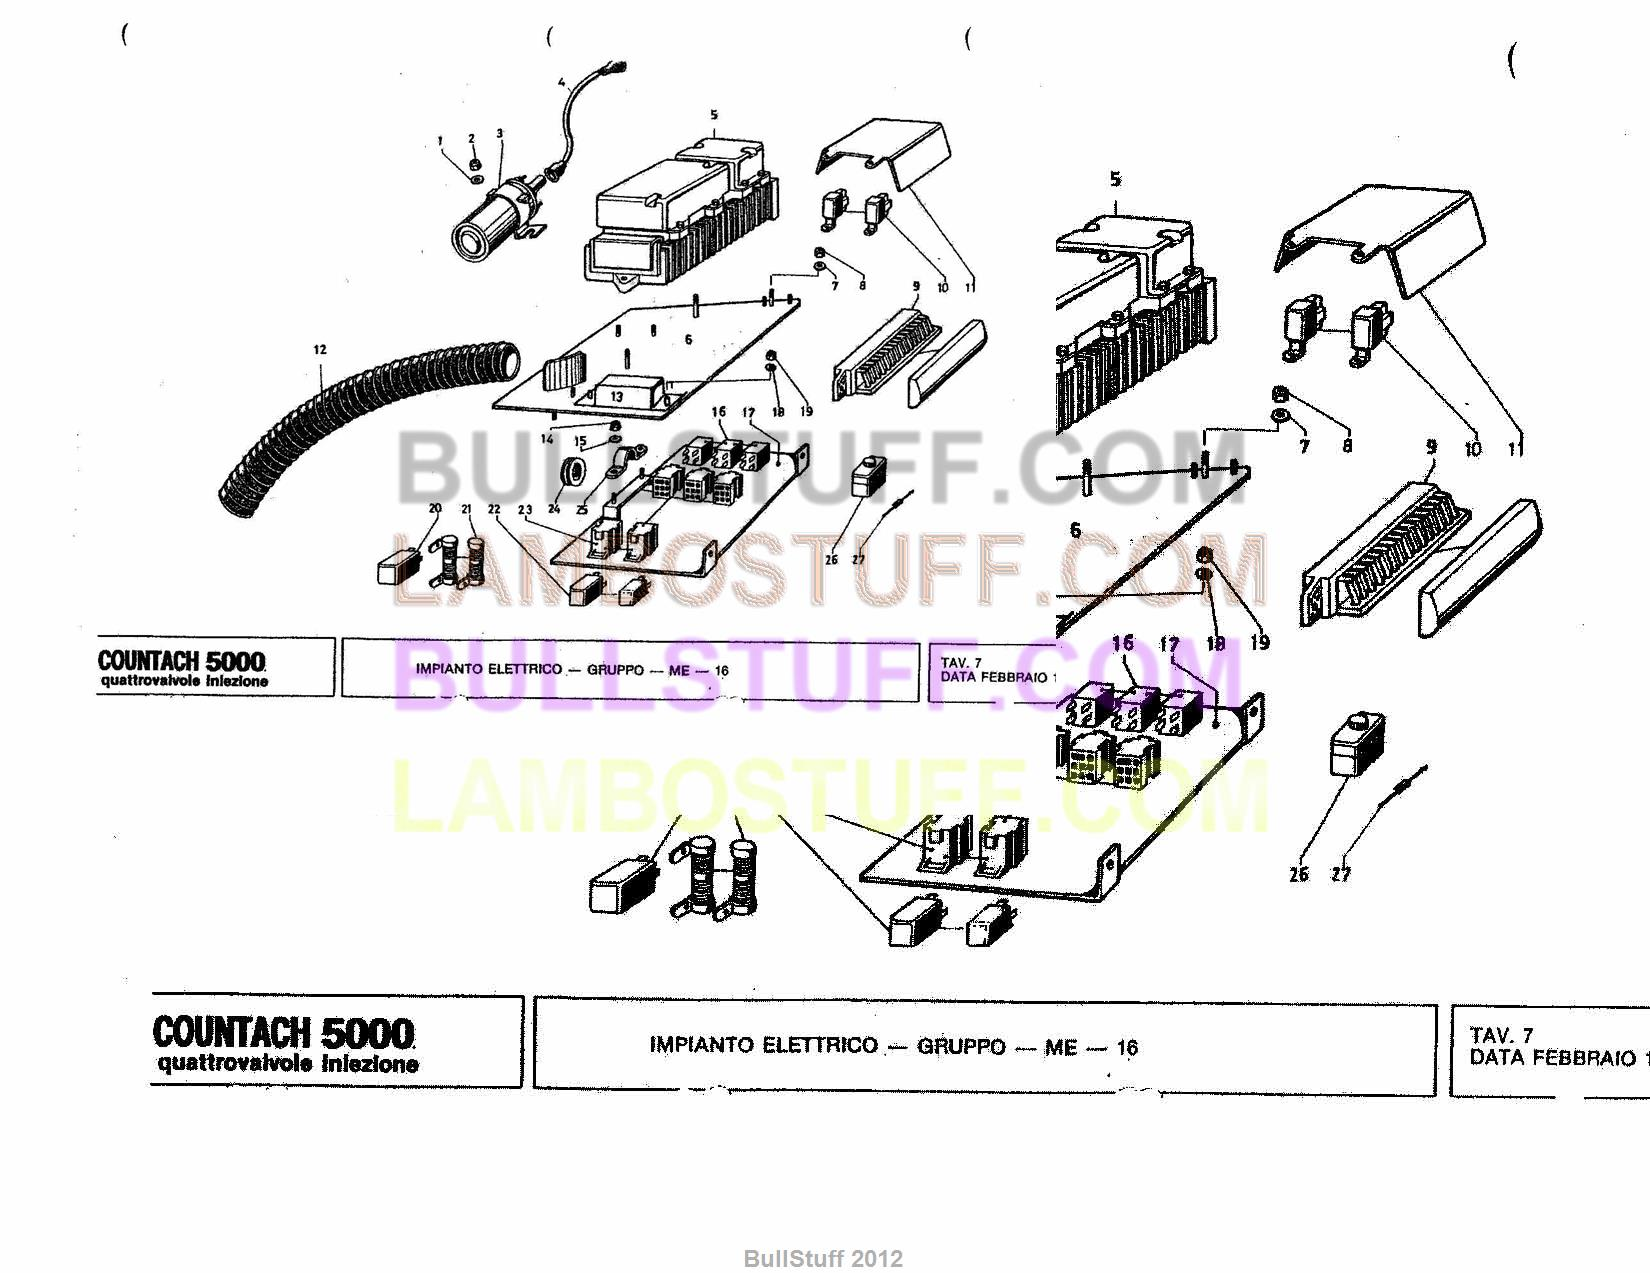 service manual pdf 1986 lamborghini countach electrical troubleshooting manual service. Black Bedroom Furniture Sets. Home Design Ideas